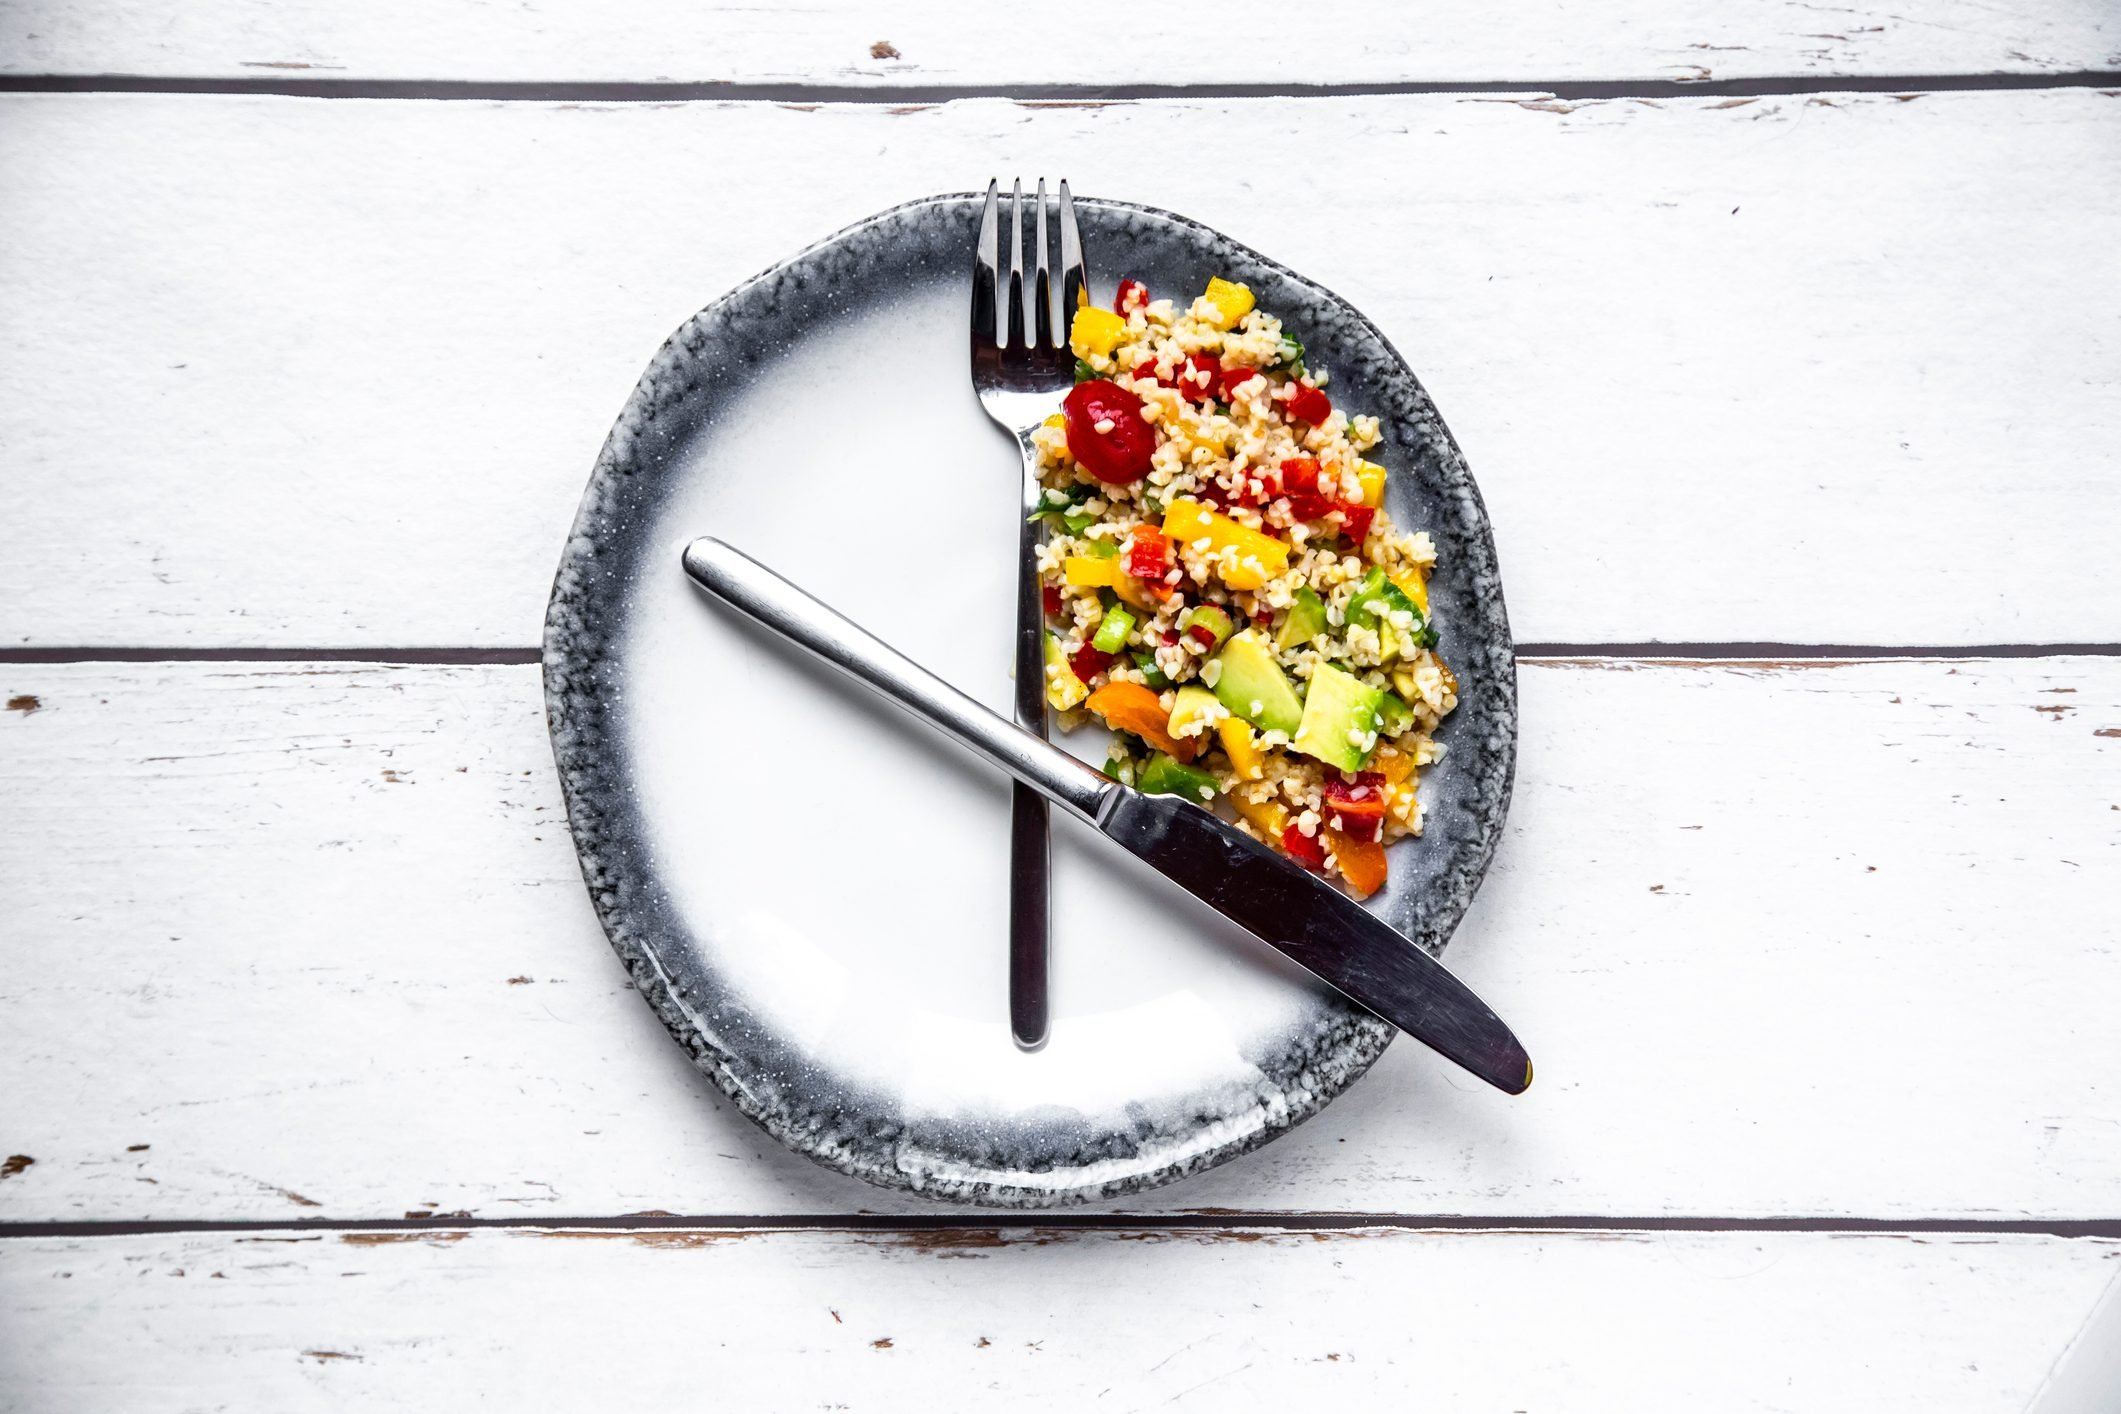 plate with fork and knife resembling a clock for intermittent fasting concept